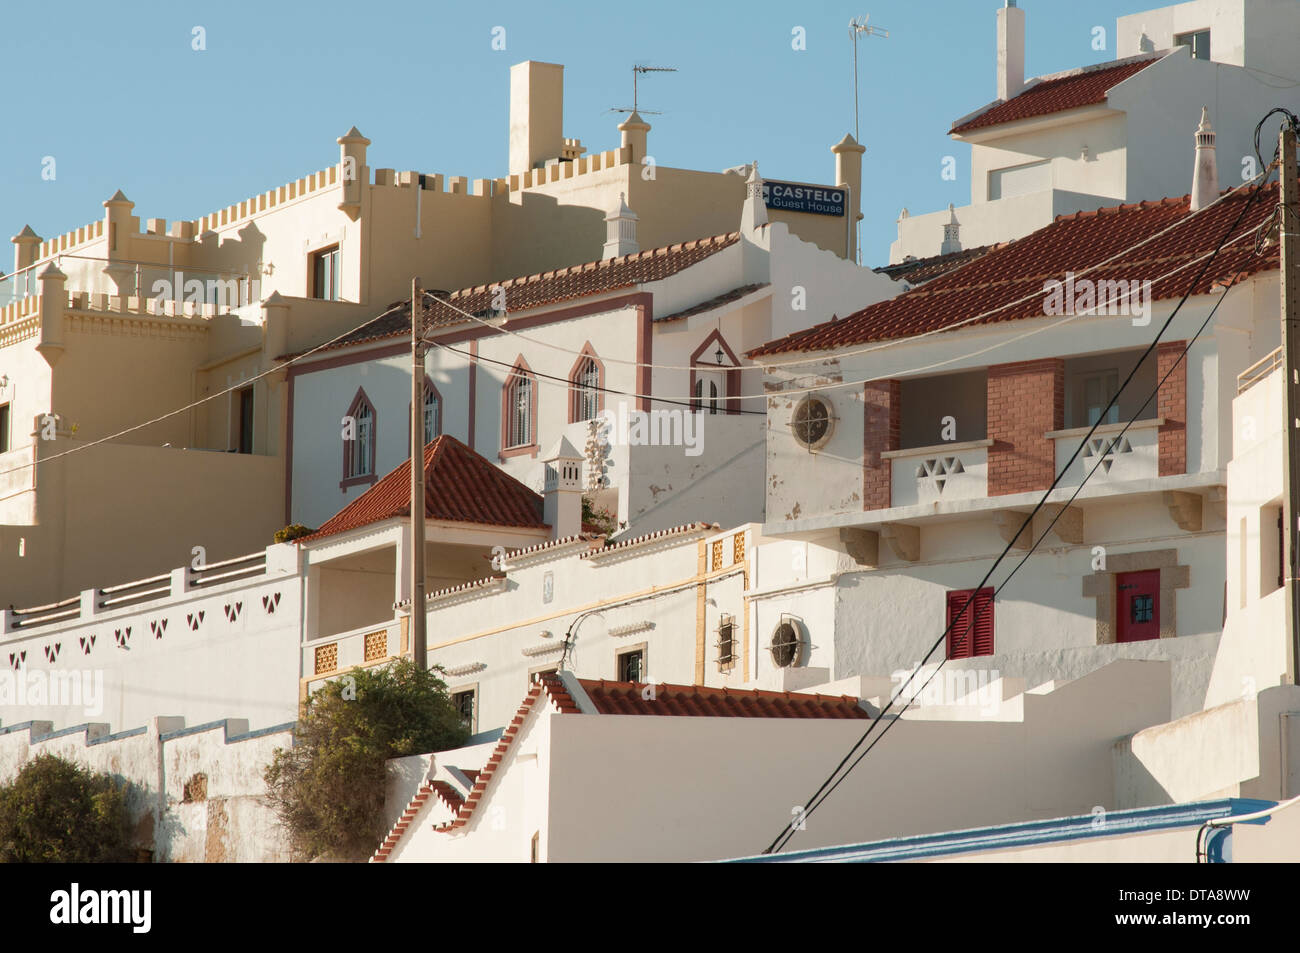 the town of Carvoeiro in the Algarve Portugal Stock Photo